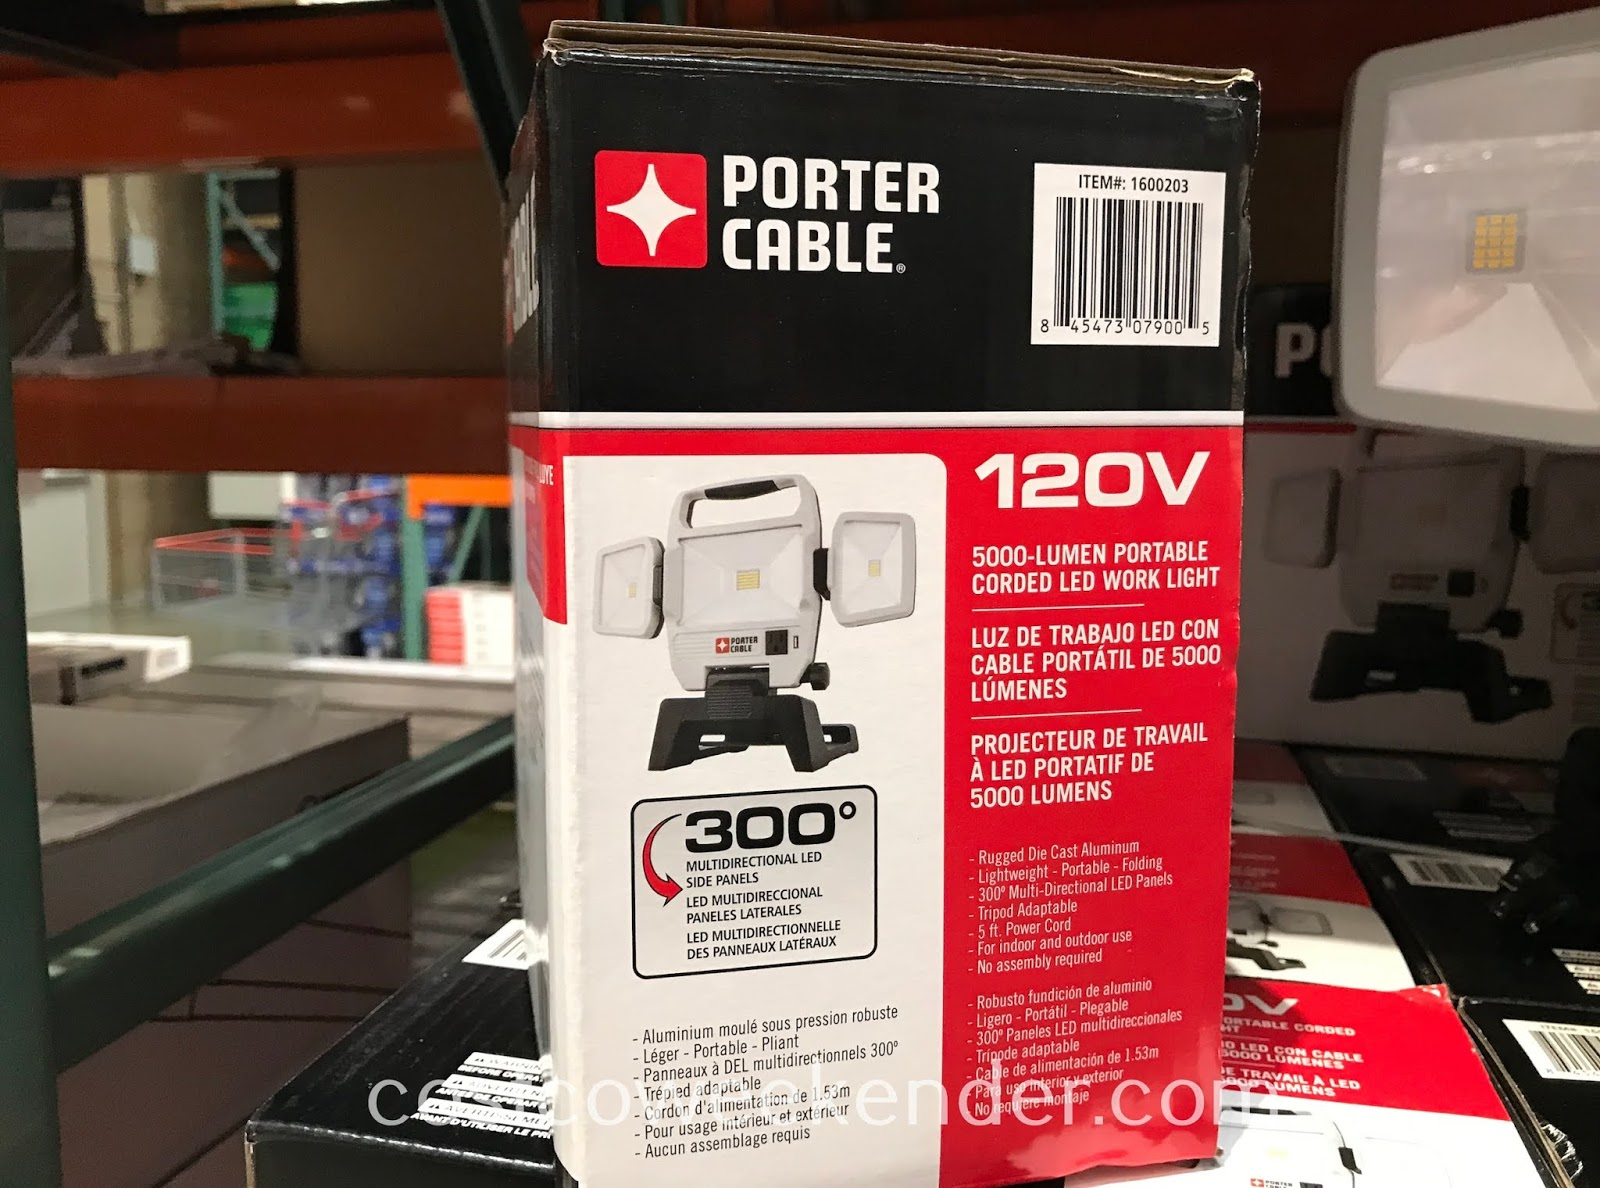 Porter Cable Portable Corded LED Work Light makes it safer when handling power tools